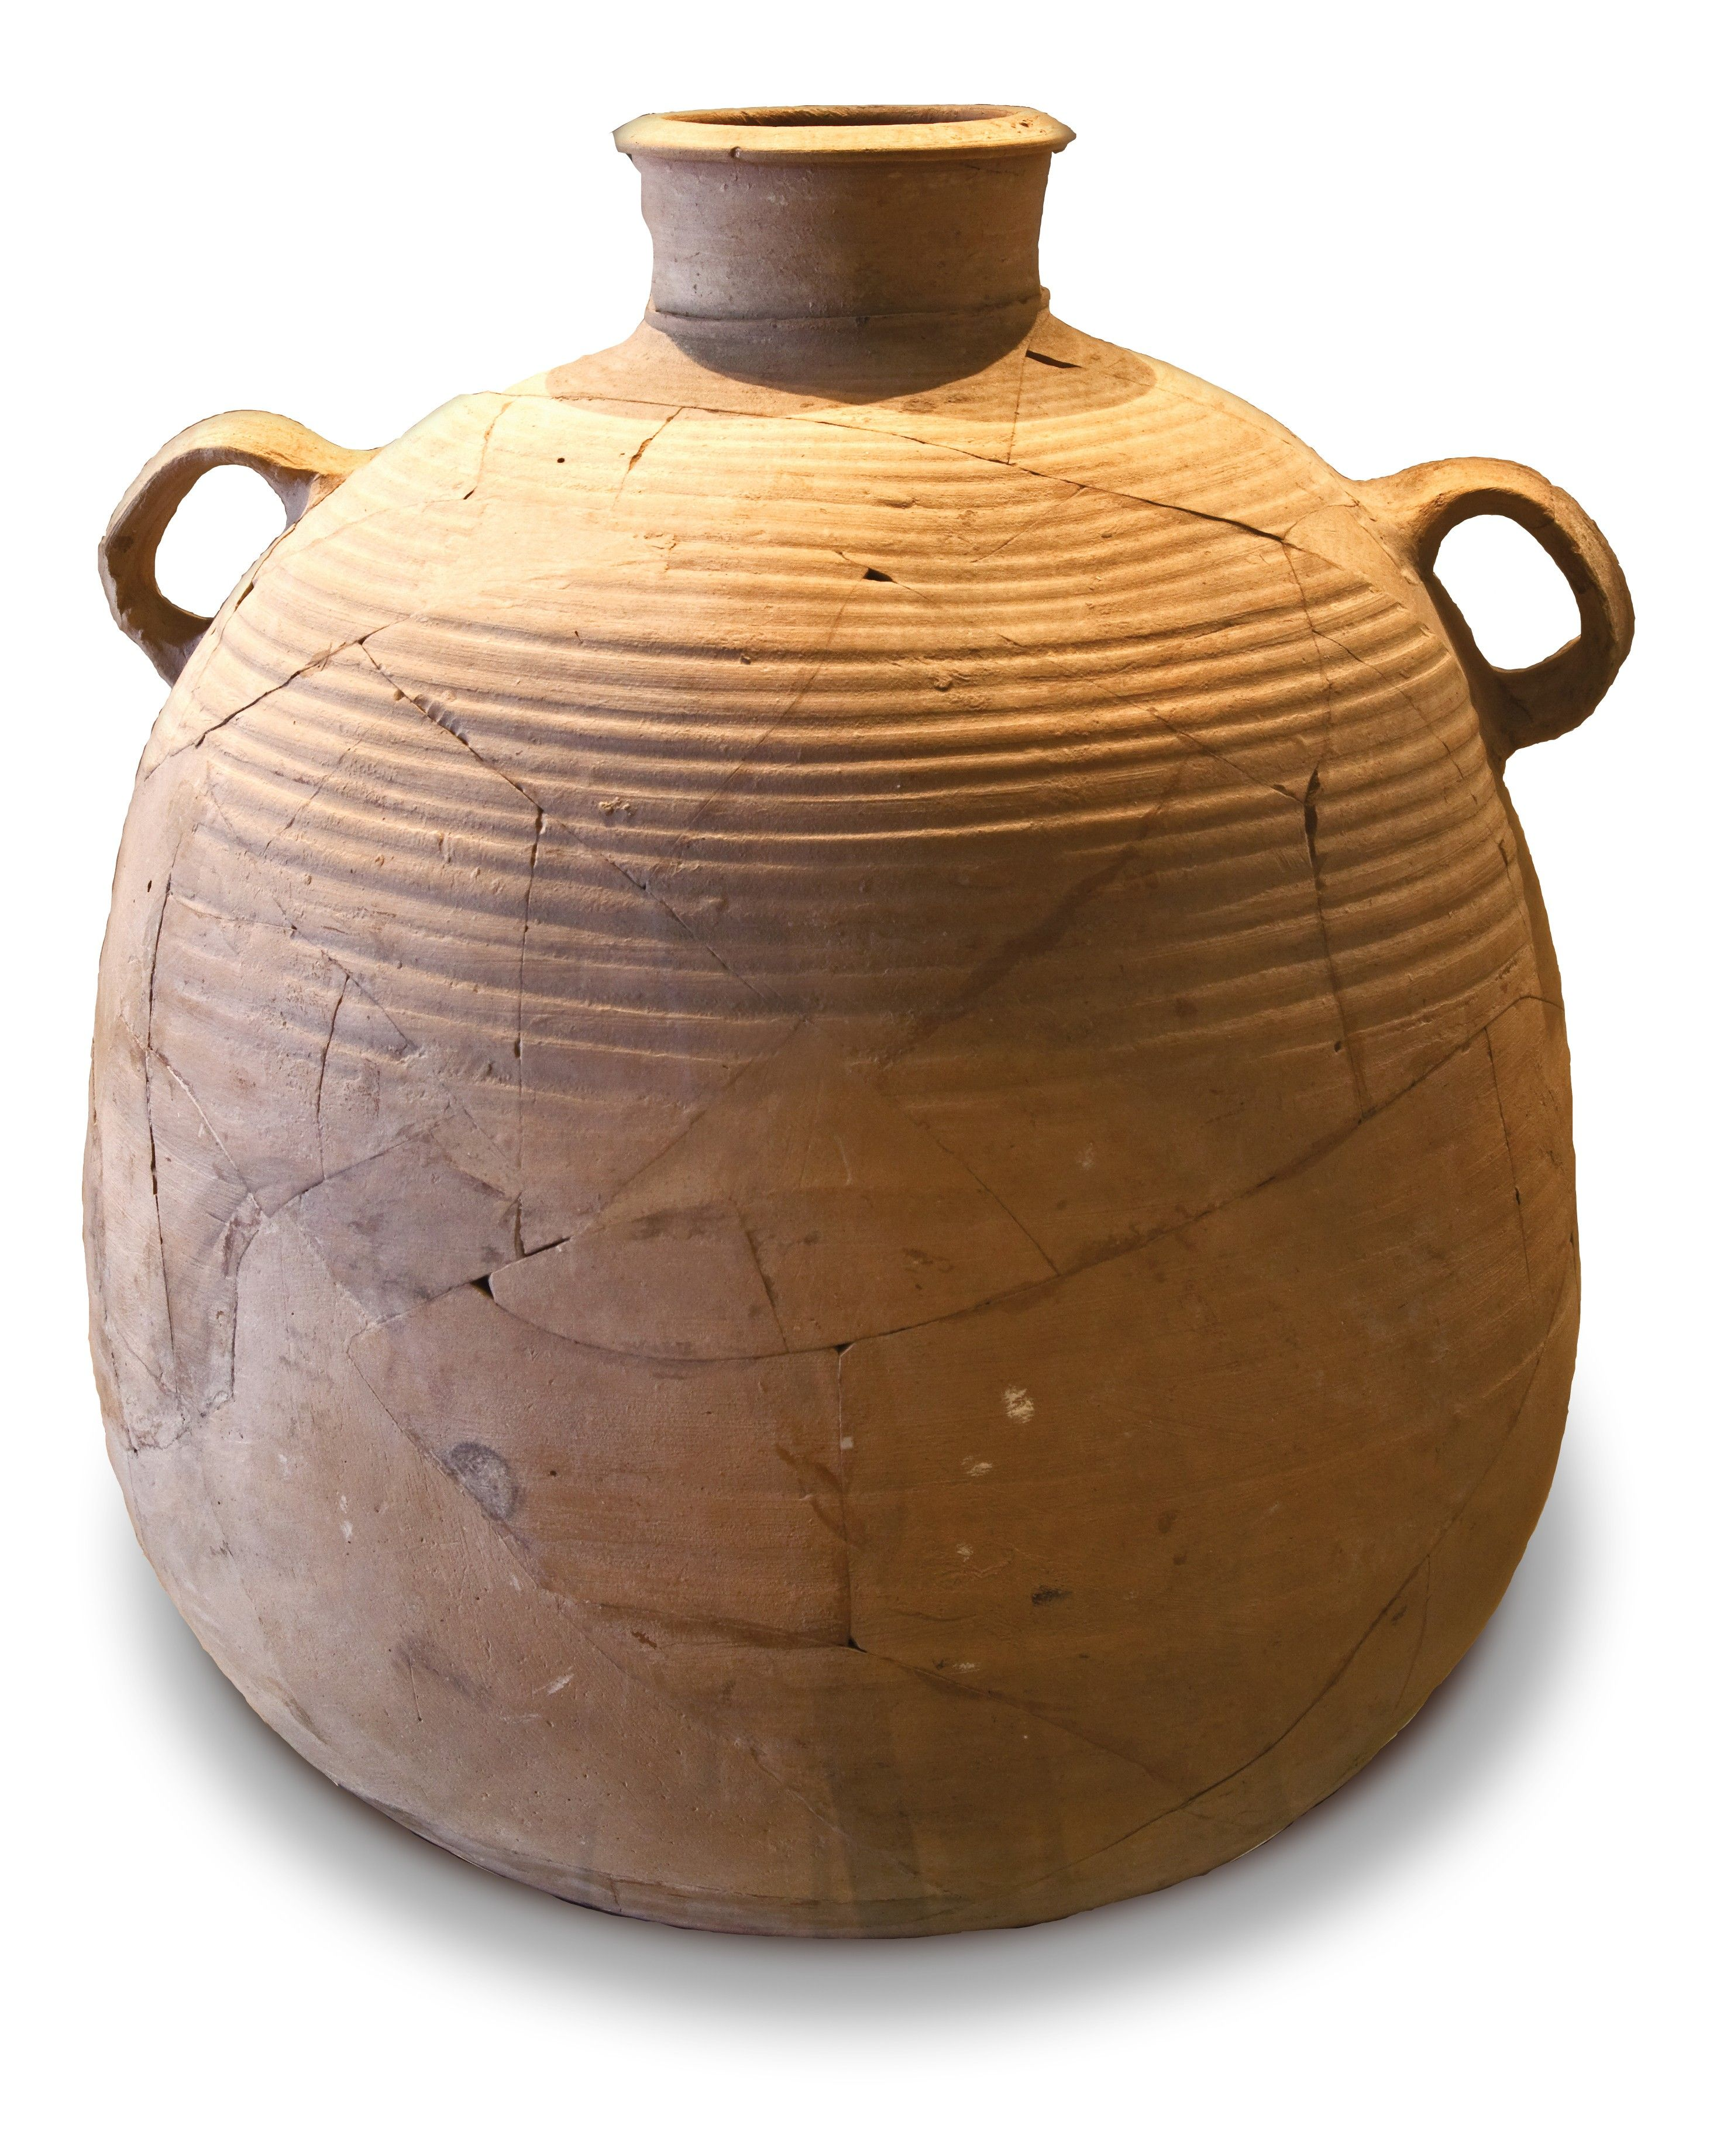 A two-handled clay pot with a narrow opening.